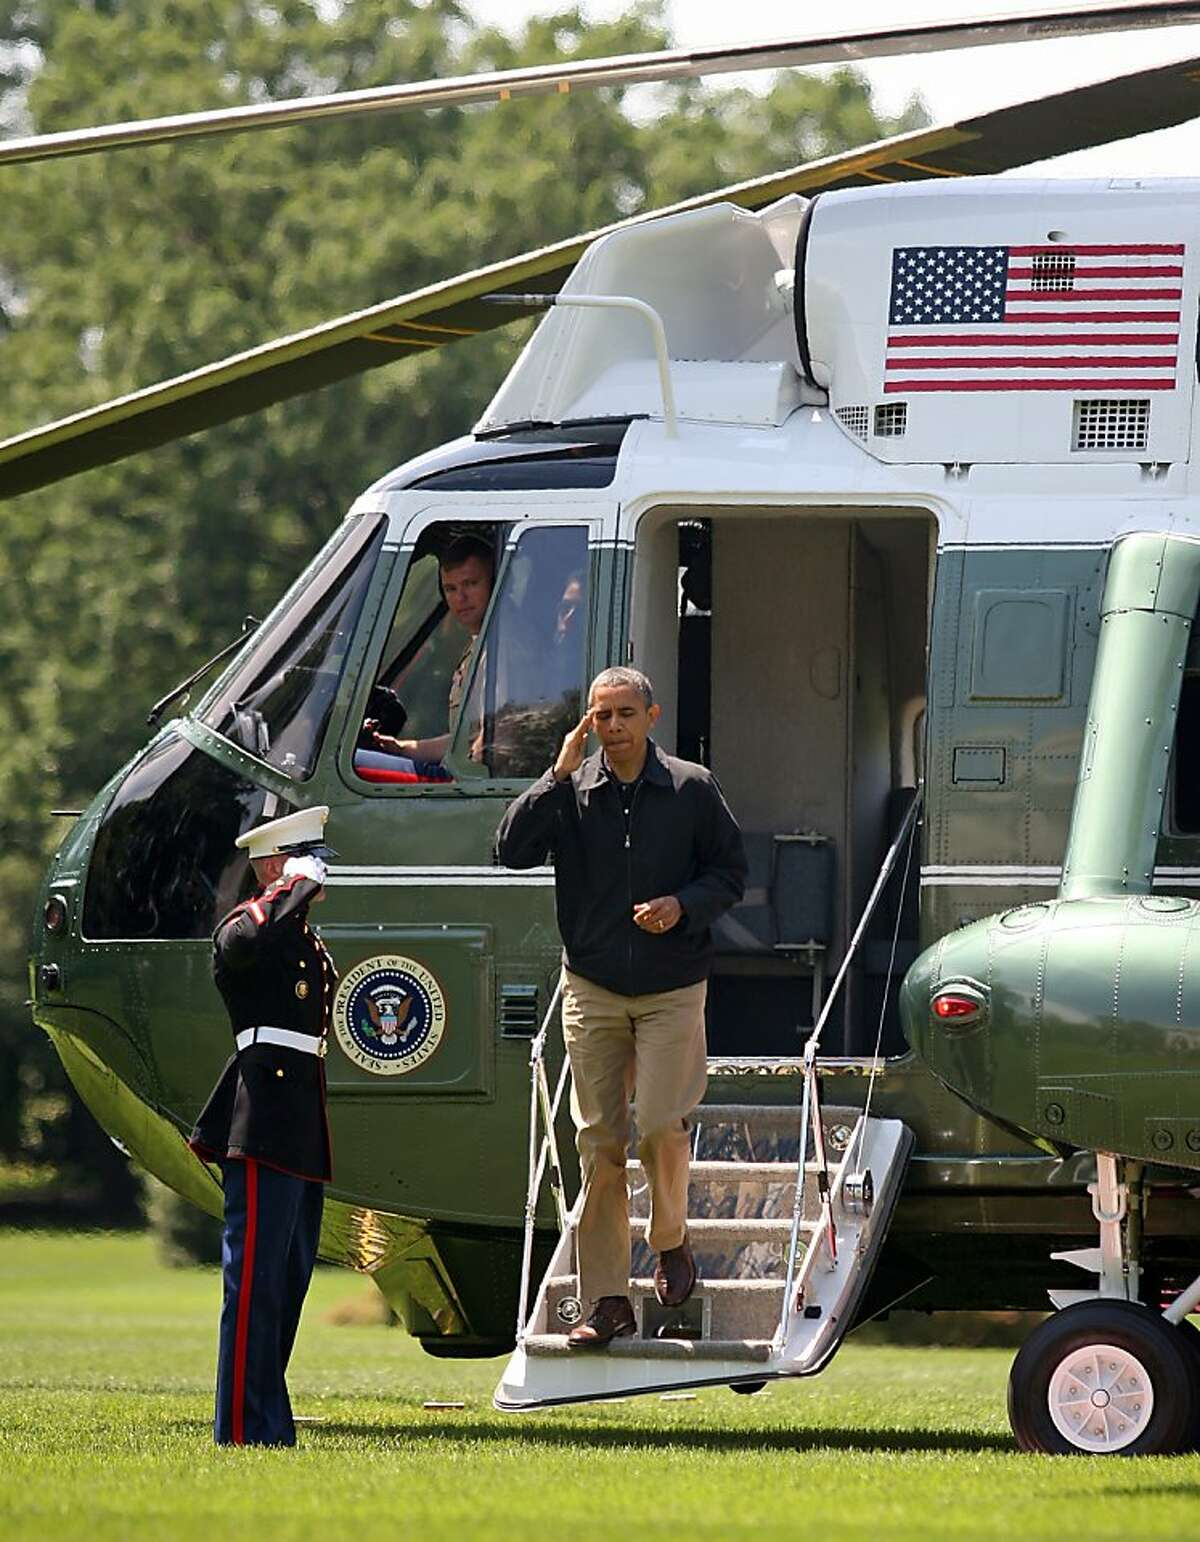 WASHINGTON, DC - JUNE 3: (AFP OUT) U.S. President Barack Obama salutes as he deboards Marine One on the South Lawn of the White House June 3, 2012 in Washington, DC. Obama was returning from from Camp David which since taking office he has visited 22 times. (Photo by Martin H. Simon-Pool/Getty Images)